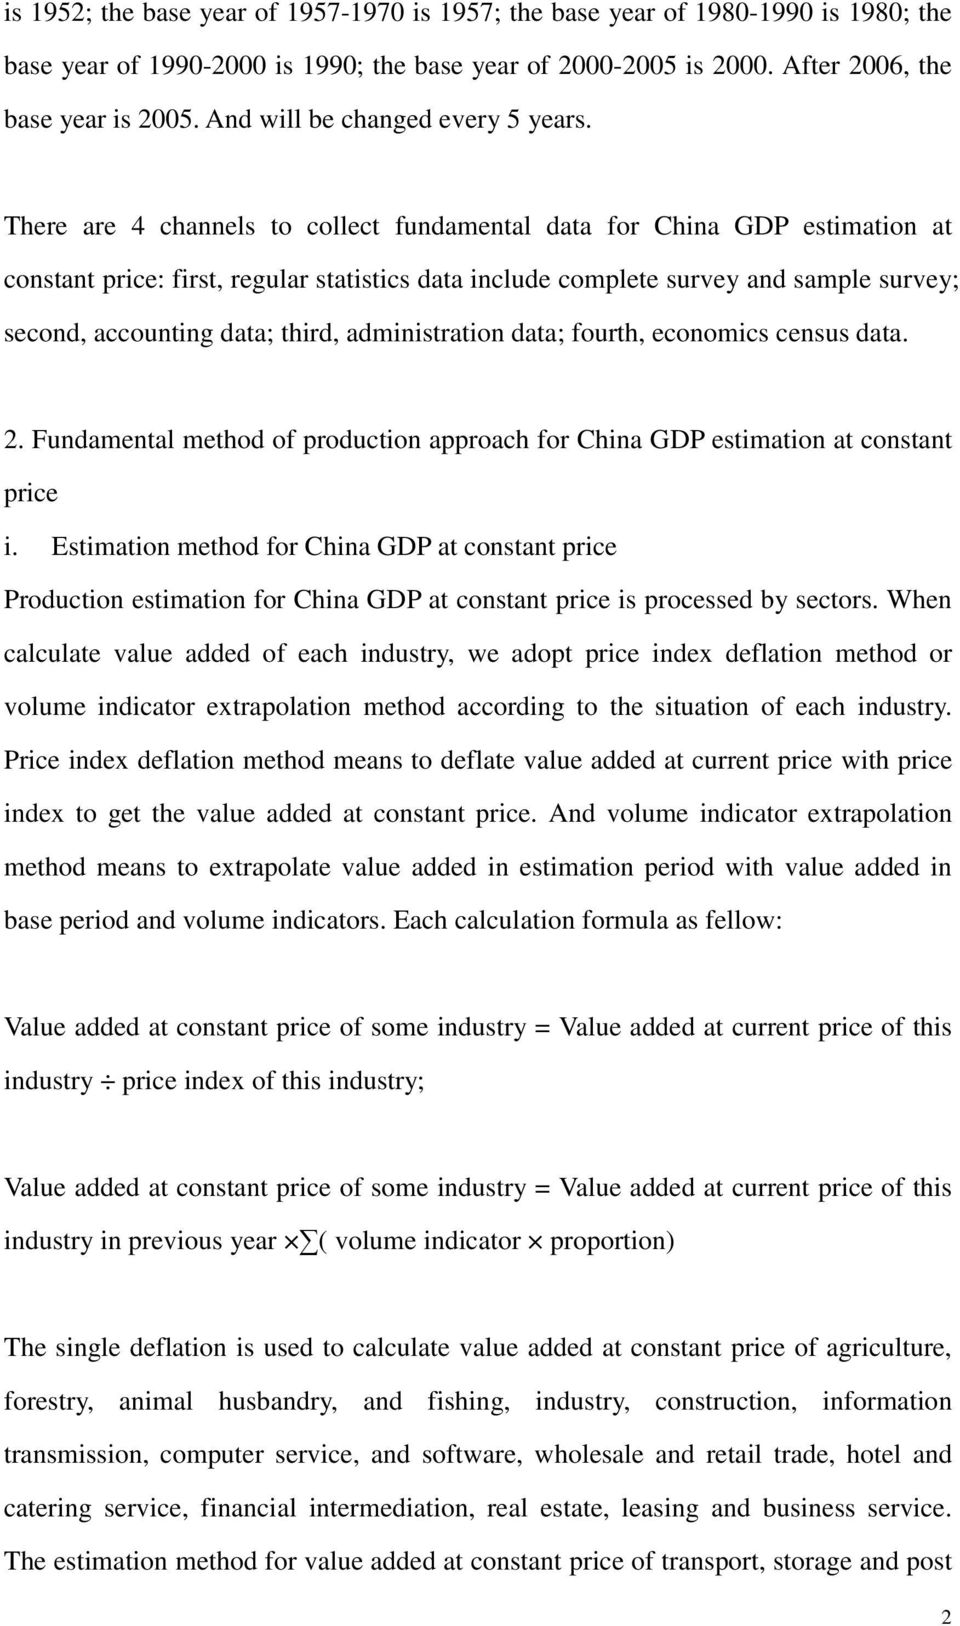 There are 4 channels to collect fundamental data for China GDP estimation at constant price: first, regular statistics data include complete survey and sample survey; second, accounting data; third,